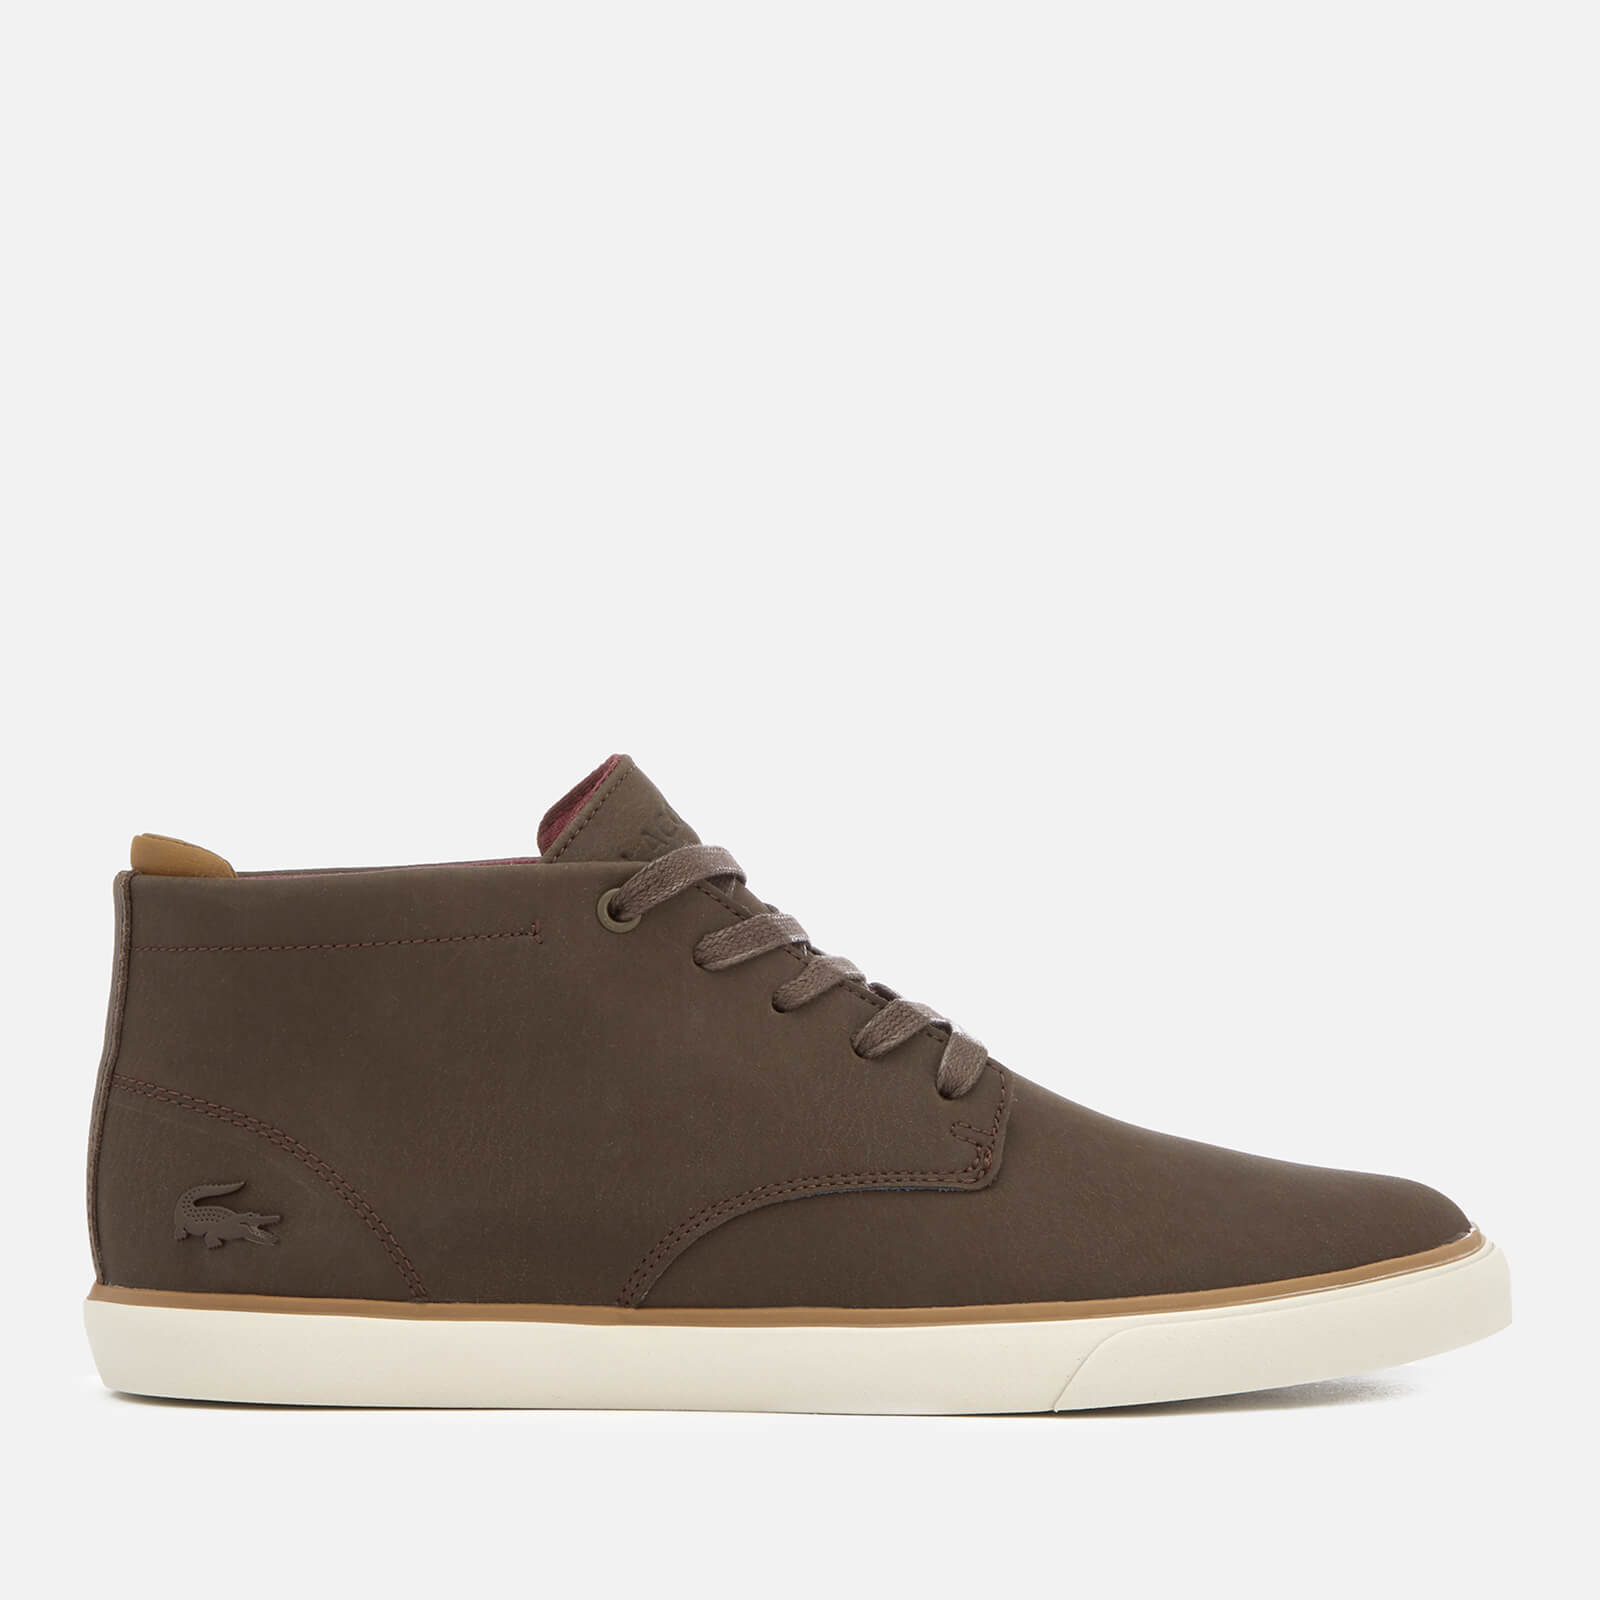 f8bb9a295ed Lacoste Men's Esparre Chukka 318 1 Leather/Suede Derby Chukka Boots -  Brown/Brown